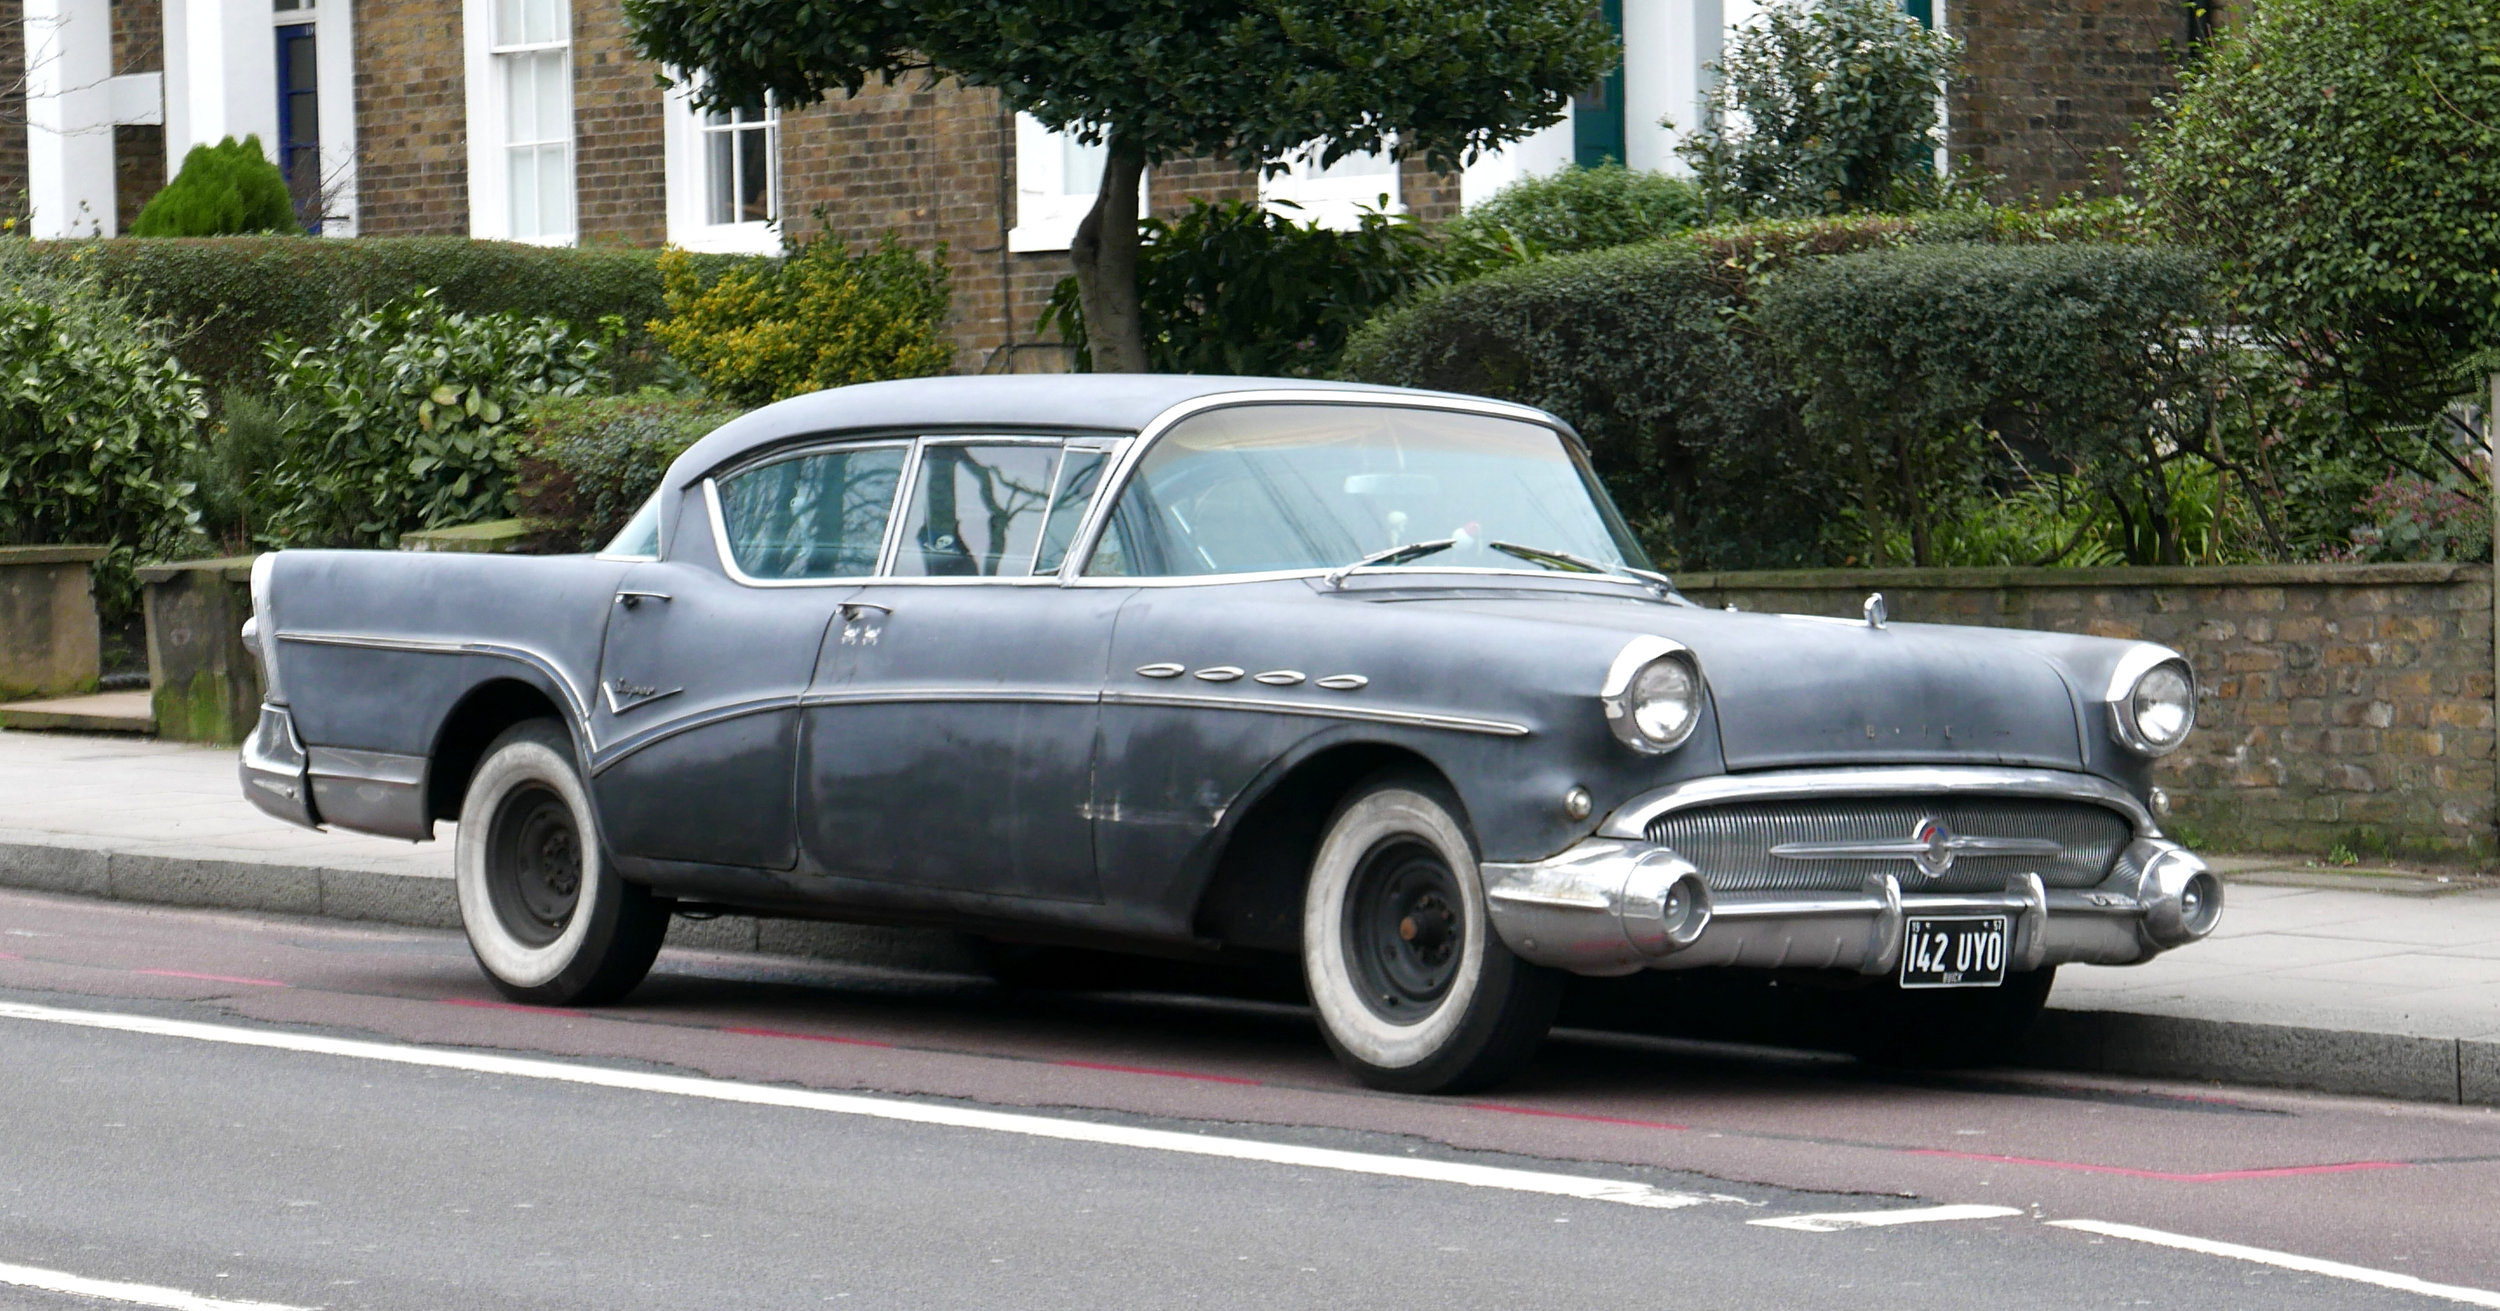 BUICK in Camden Rd (Feb 10 2018) 026 - Copy.jpg